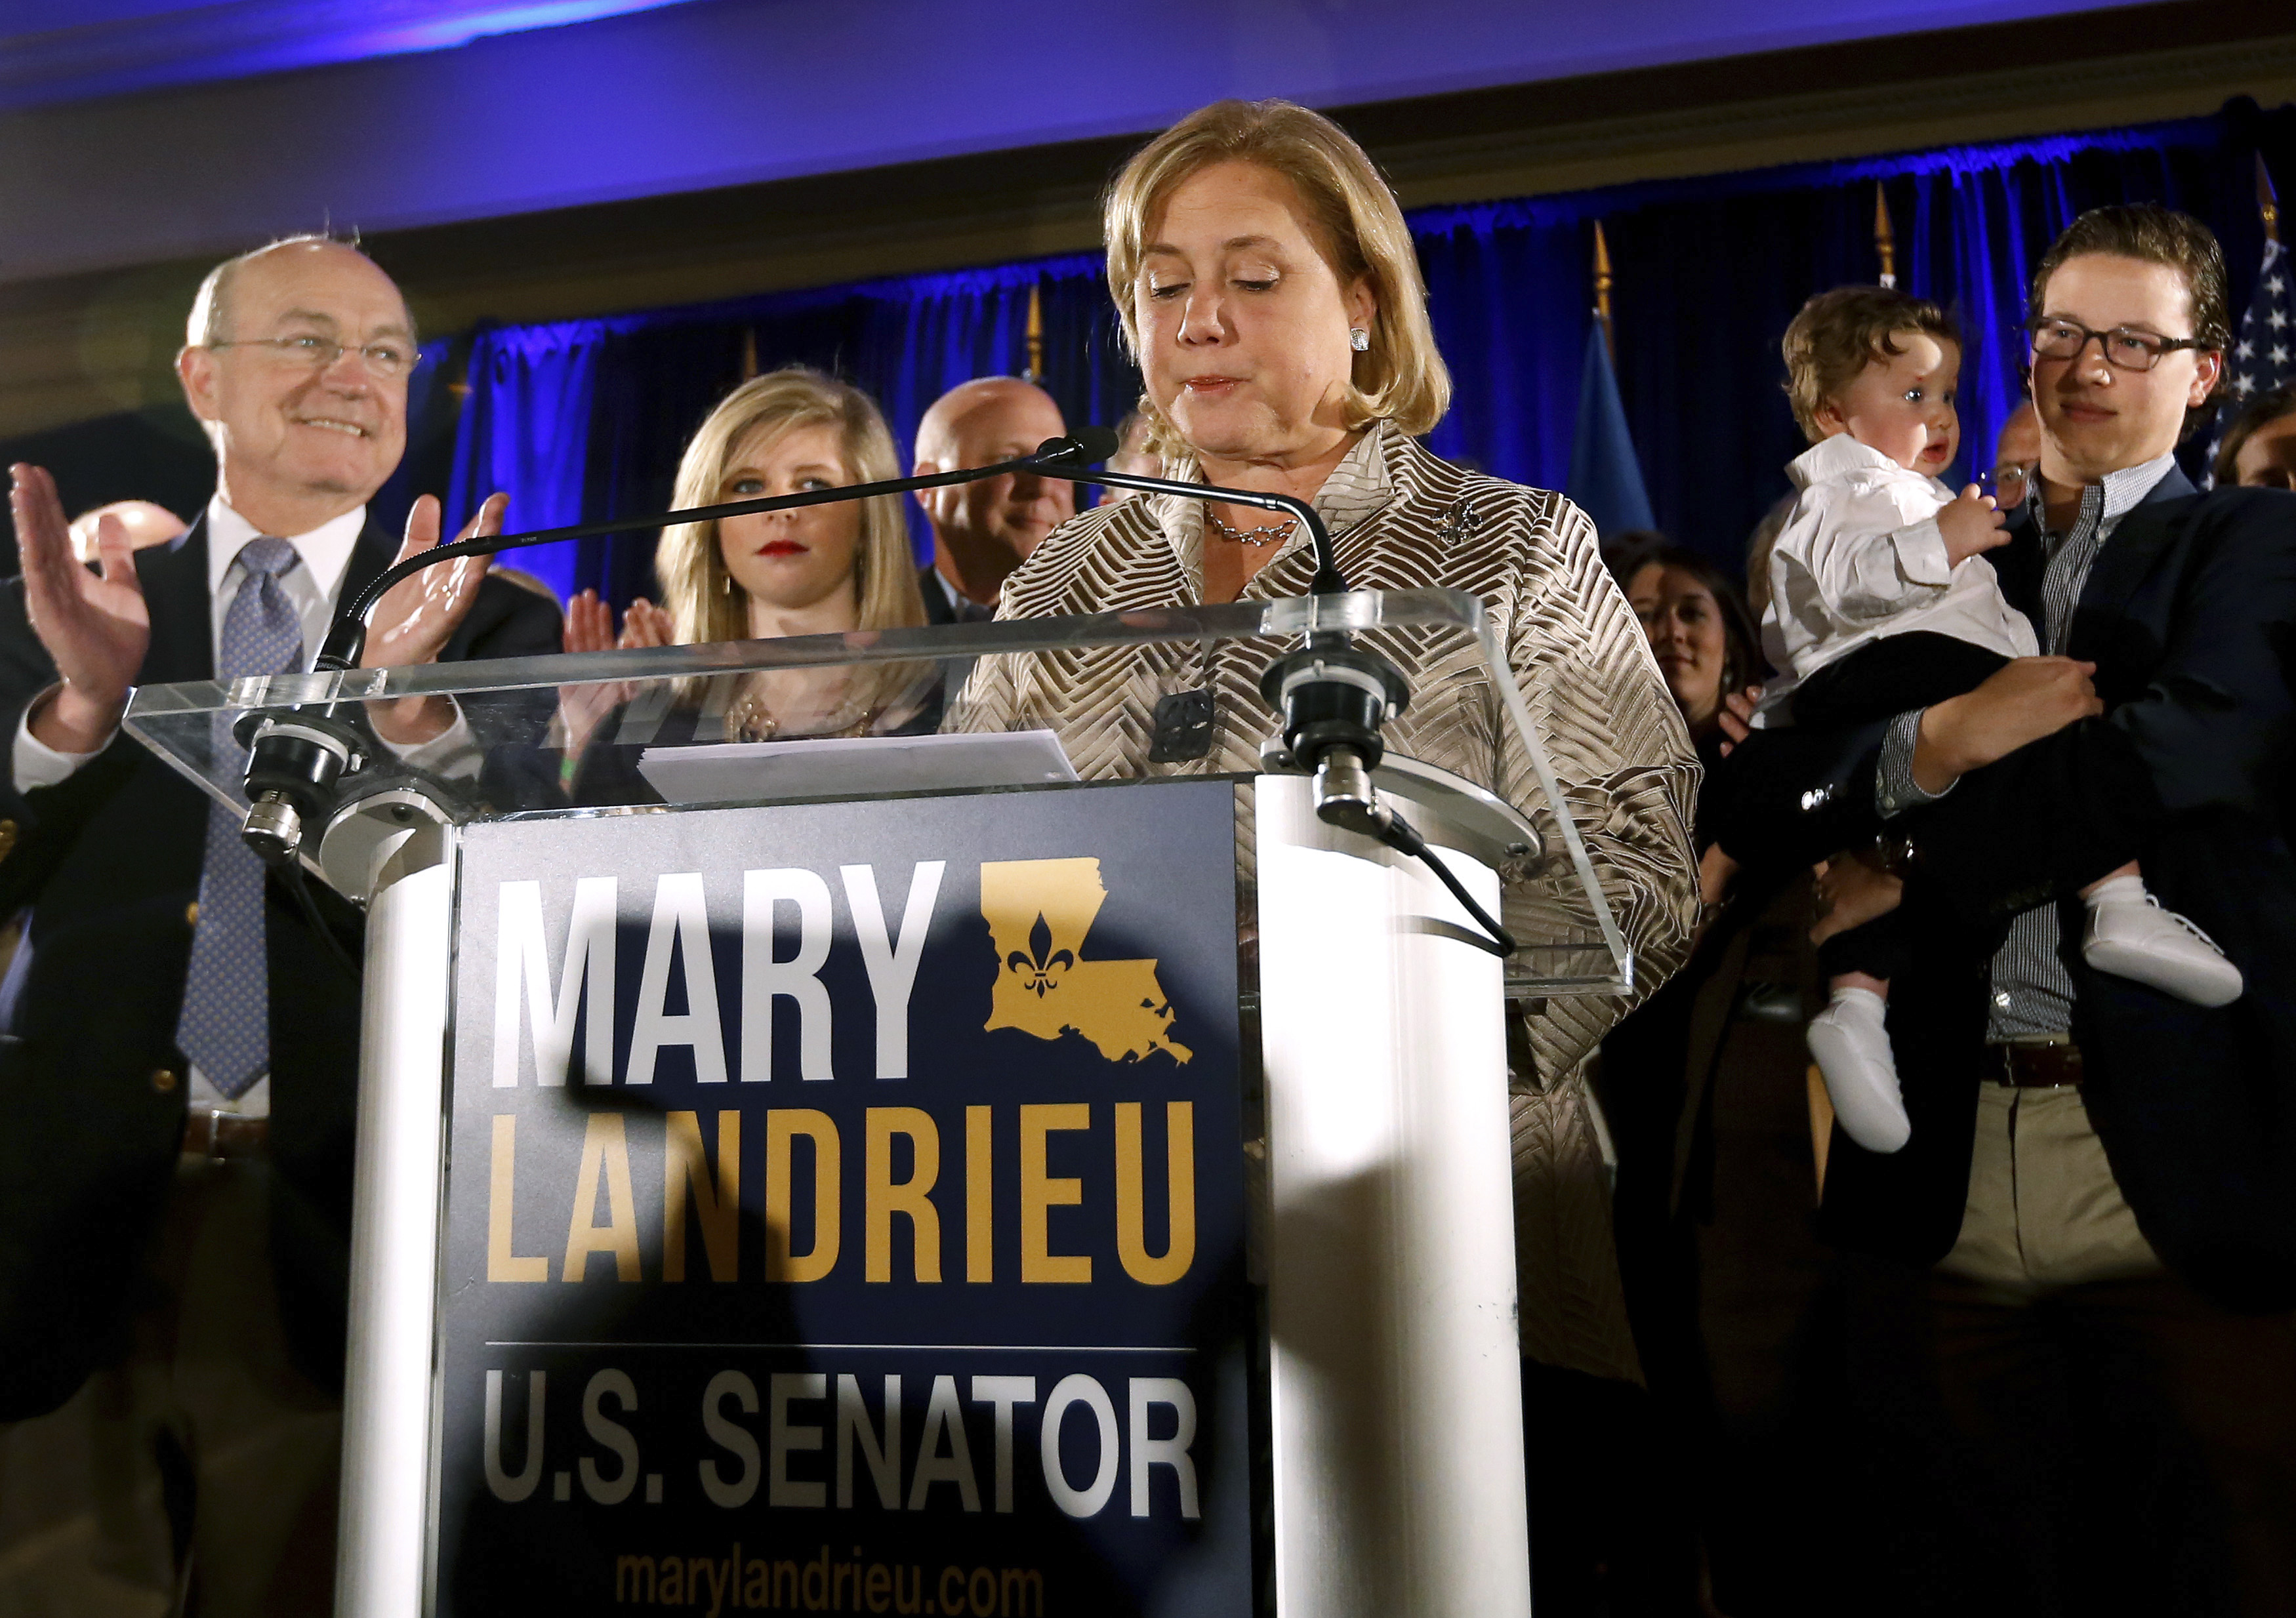 Democratic Senator Mary Landrieu delivers a concession speech after the results of the U.S. Senate race in New Orleans on Dec. 6, 2014.